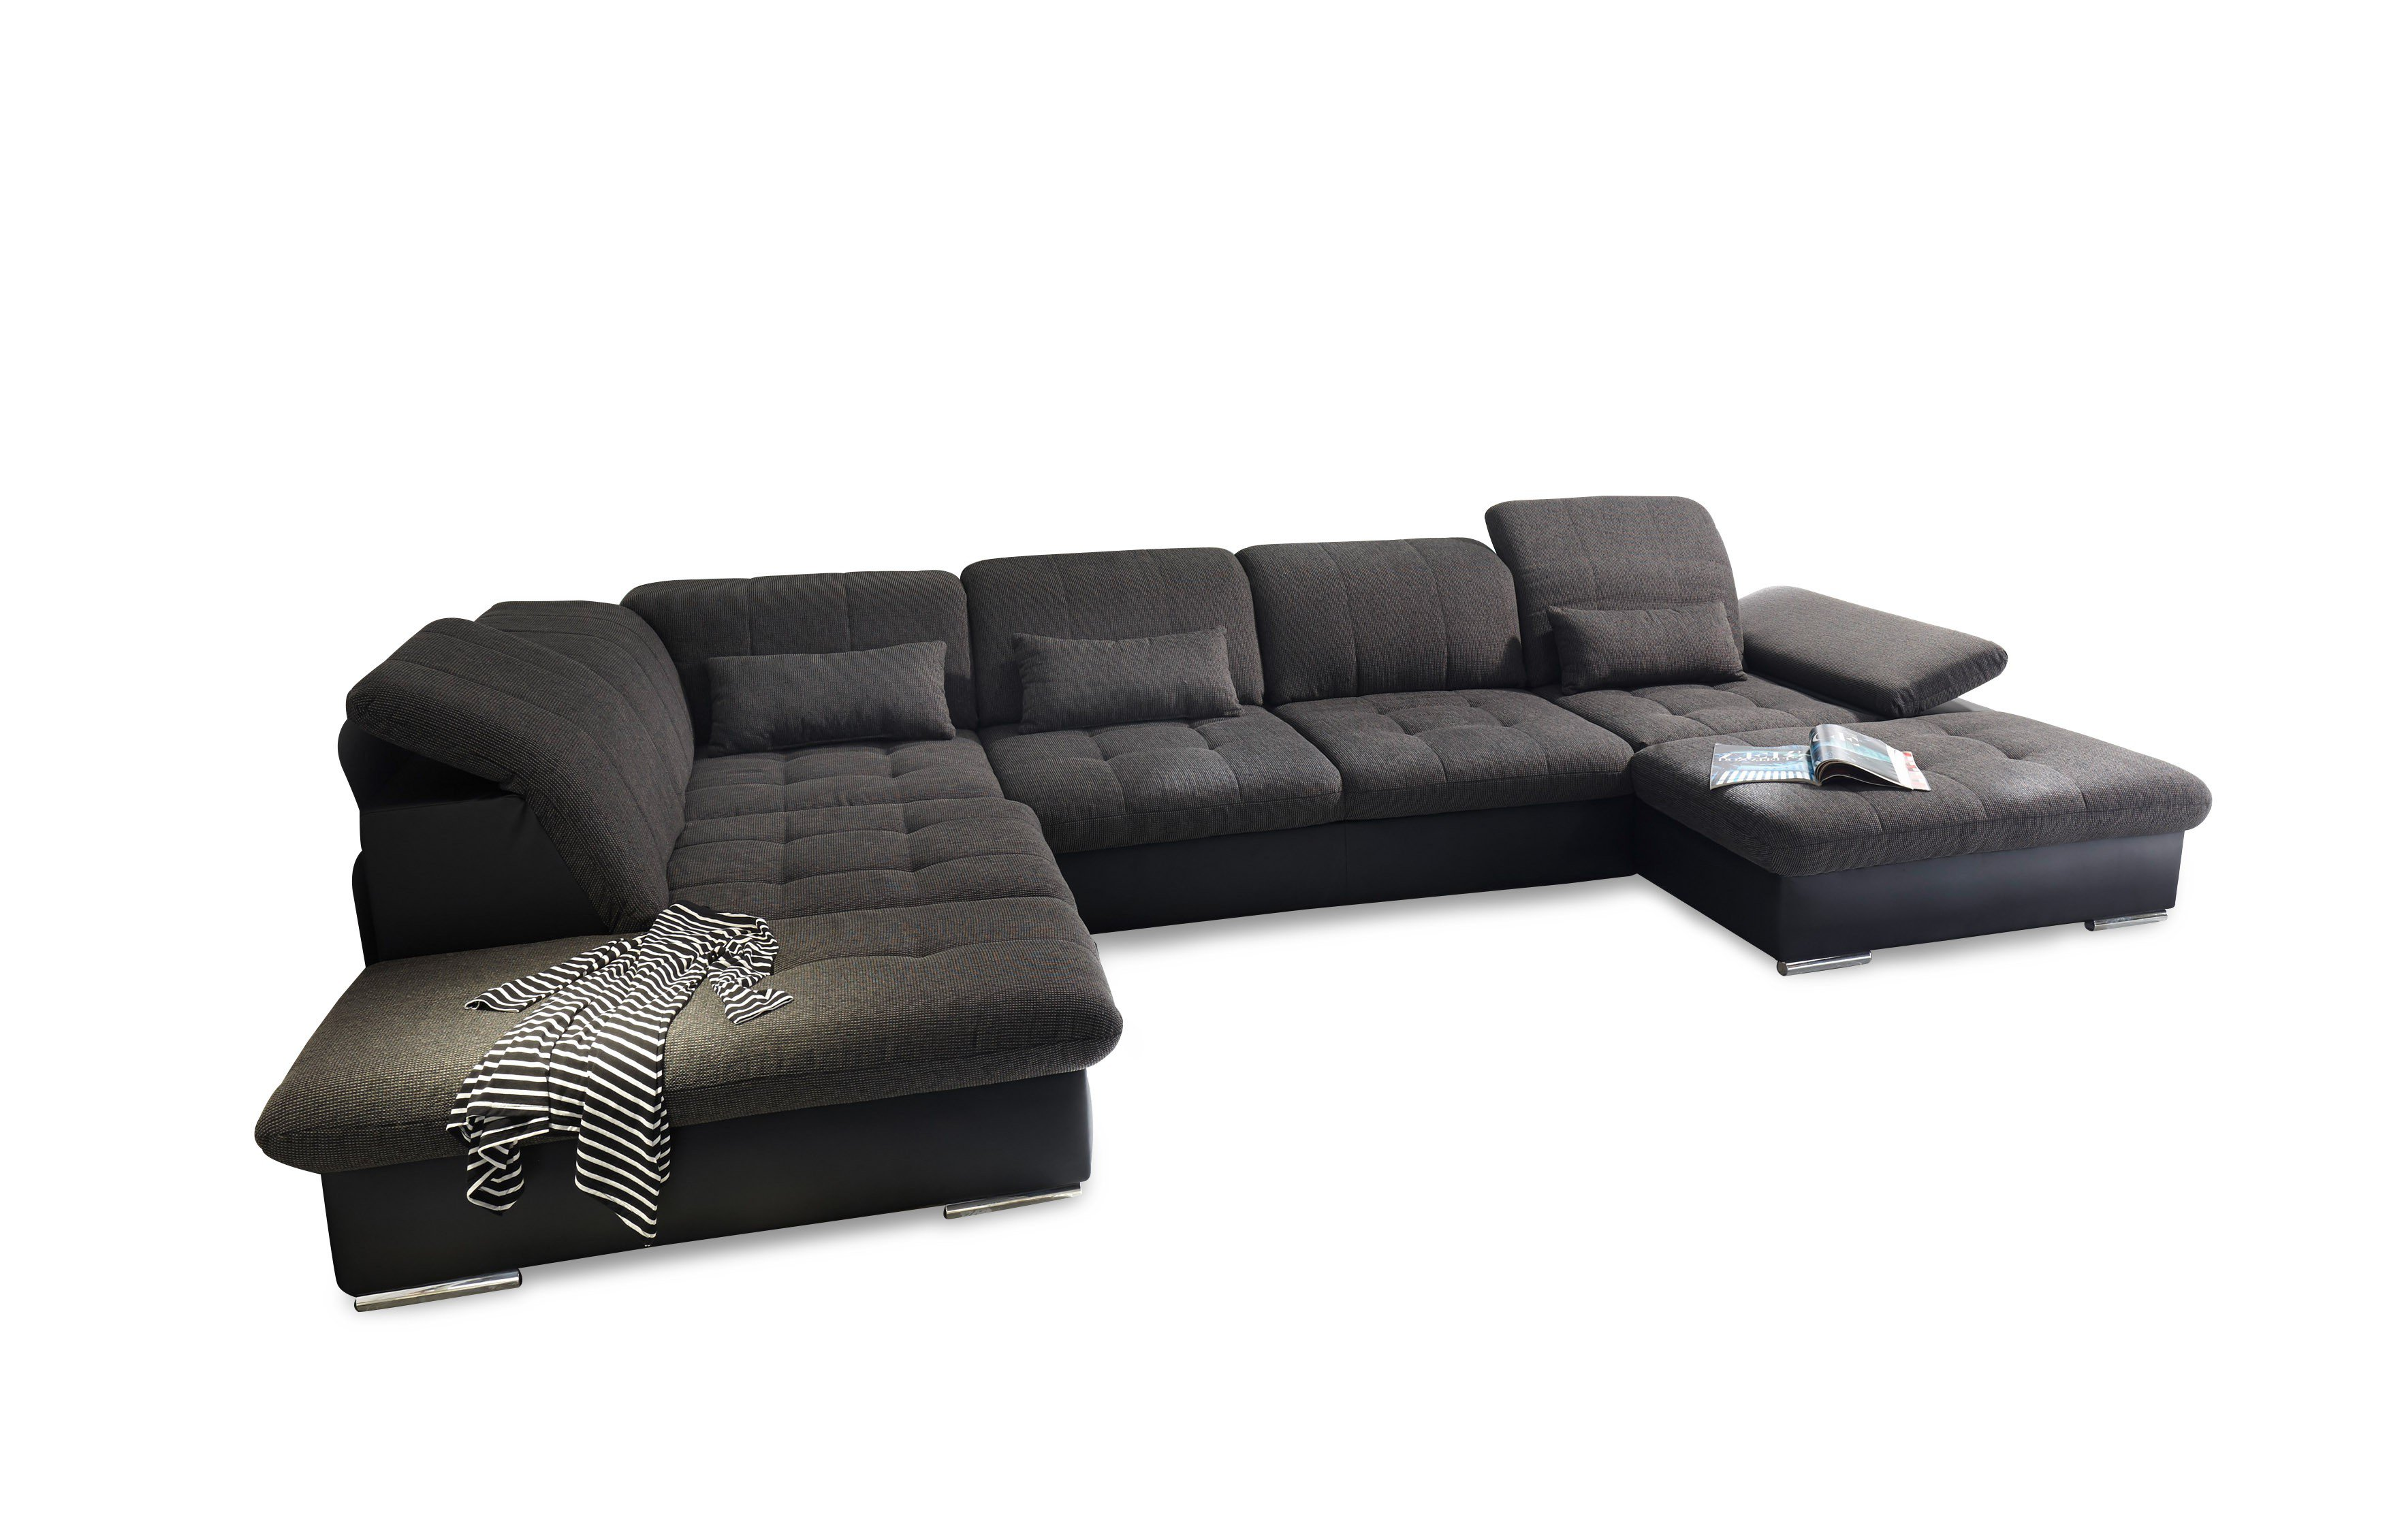 black red white genf xxl sofa lawa schwarz m bel letz ihr online shop. Black Bedroom Furniture Sets. Home Design Ideas